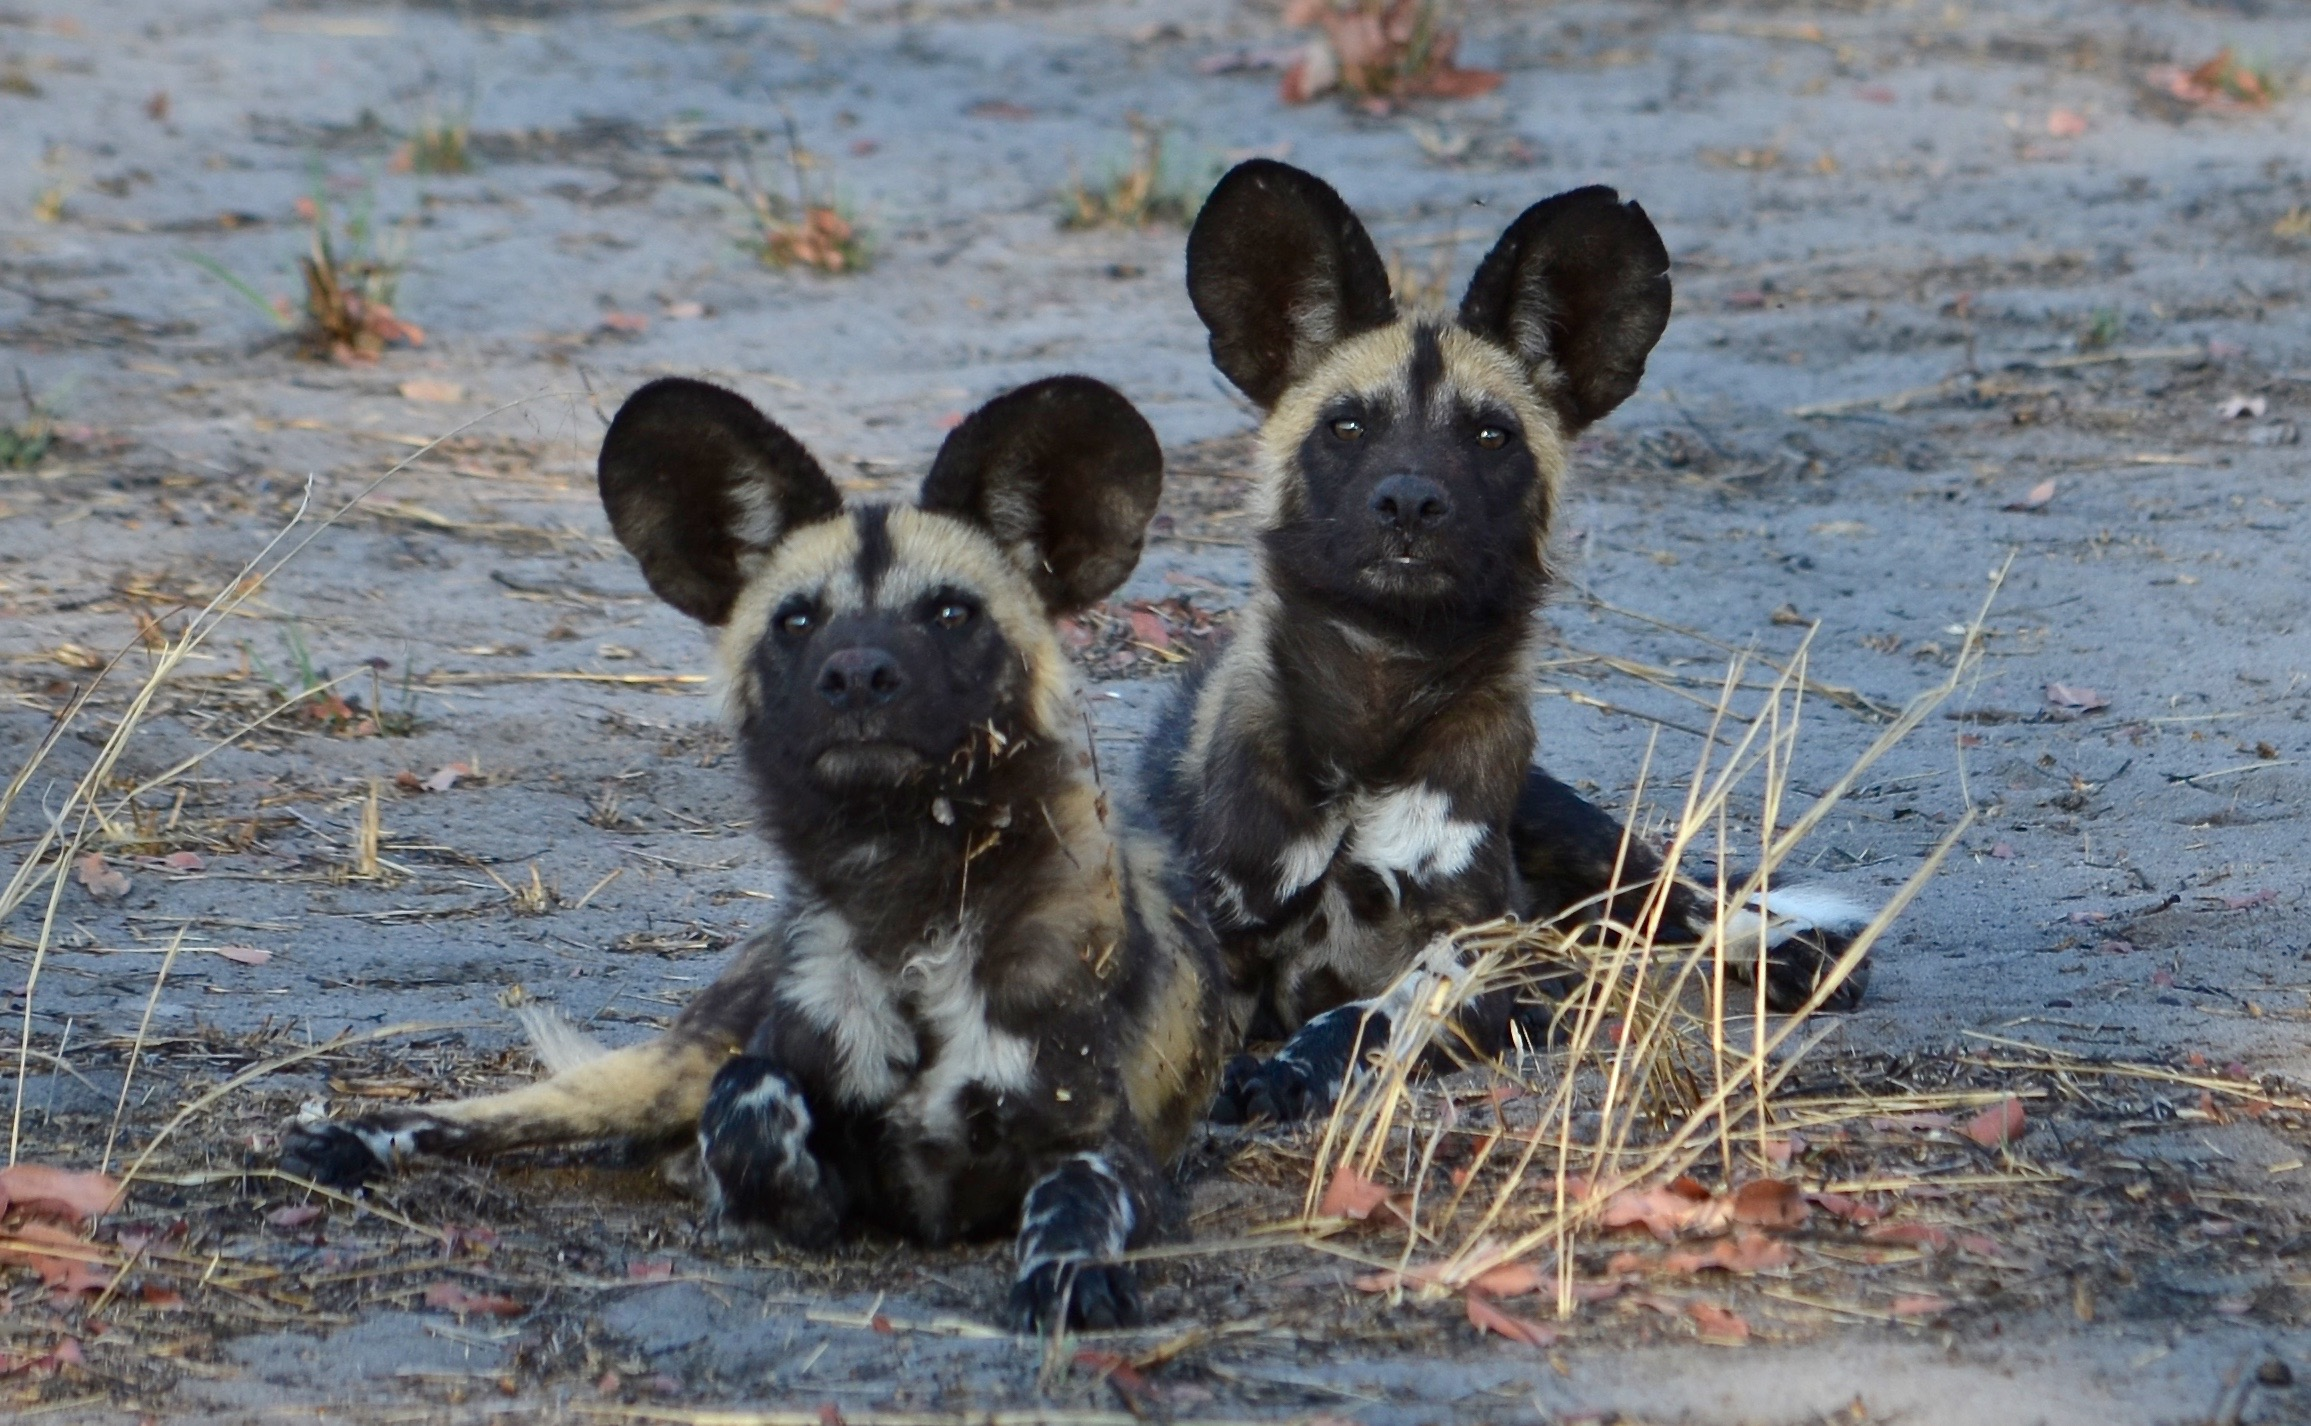 Botswana wild dog puppies